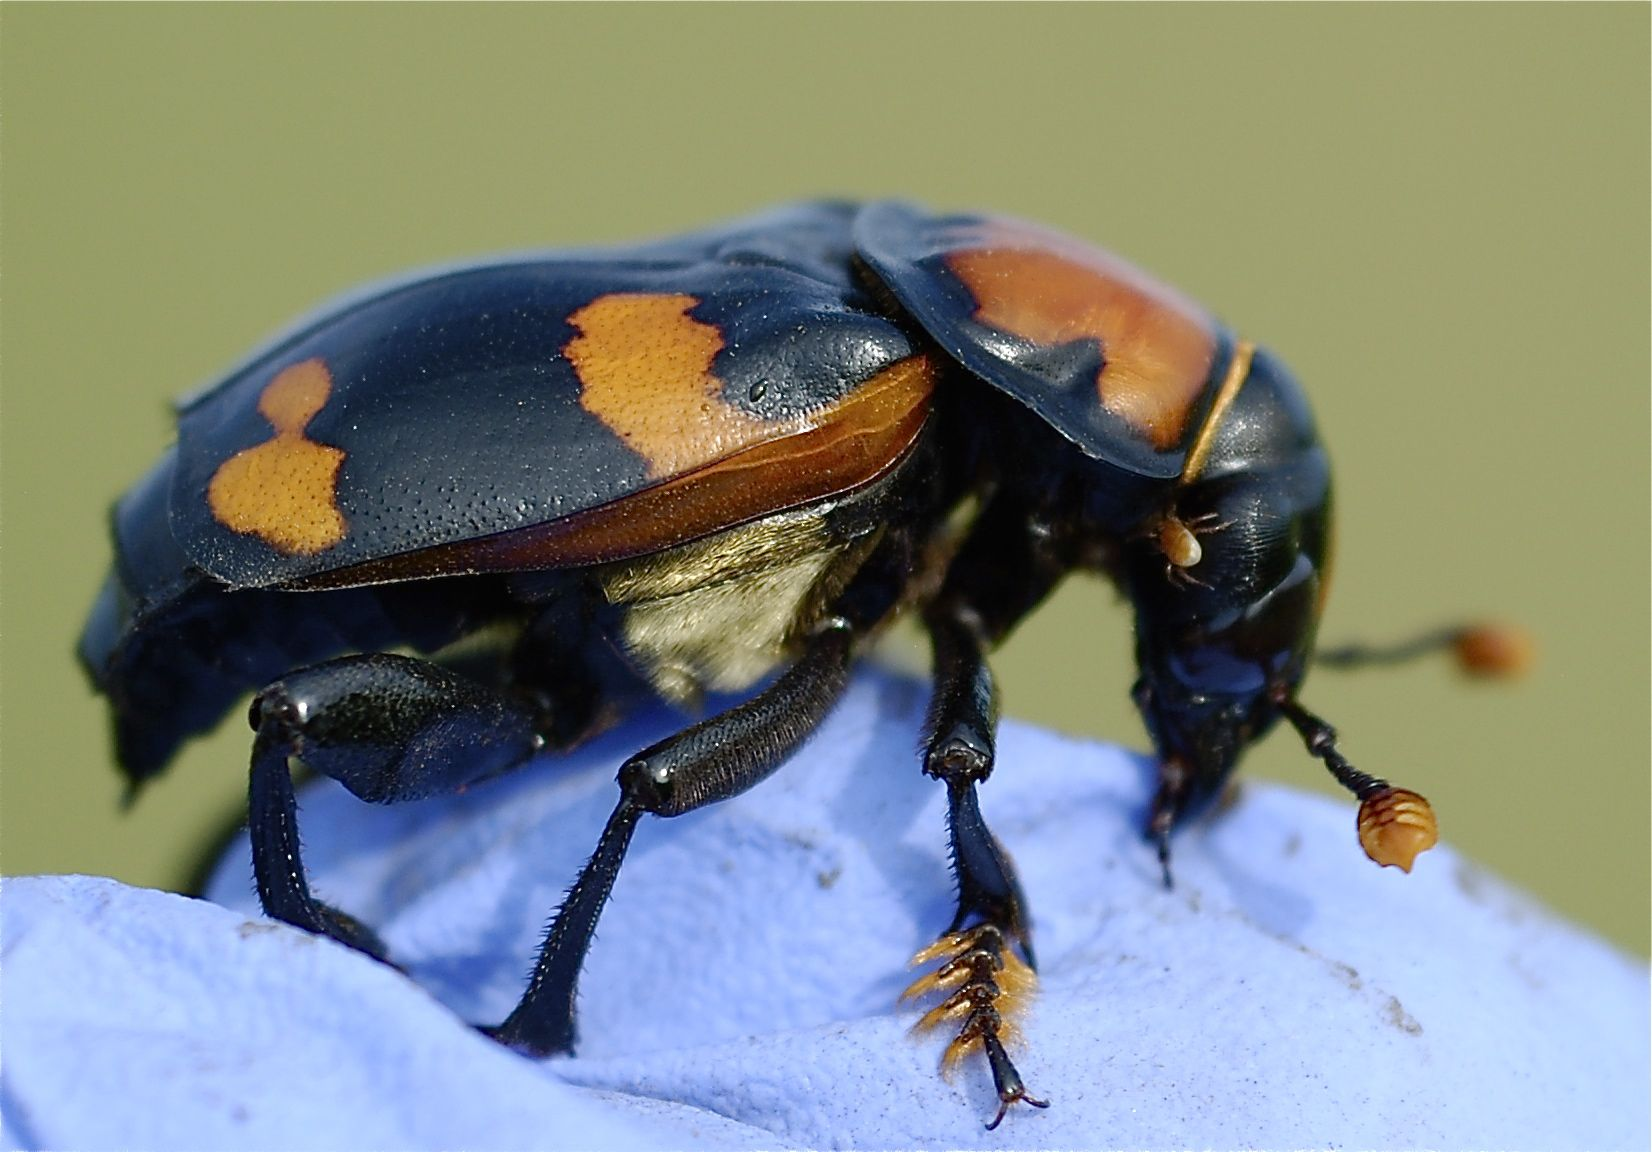 American burrying beetle close-up.